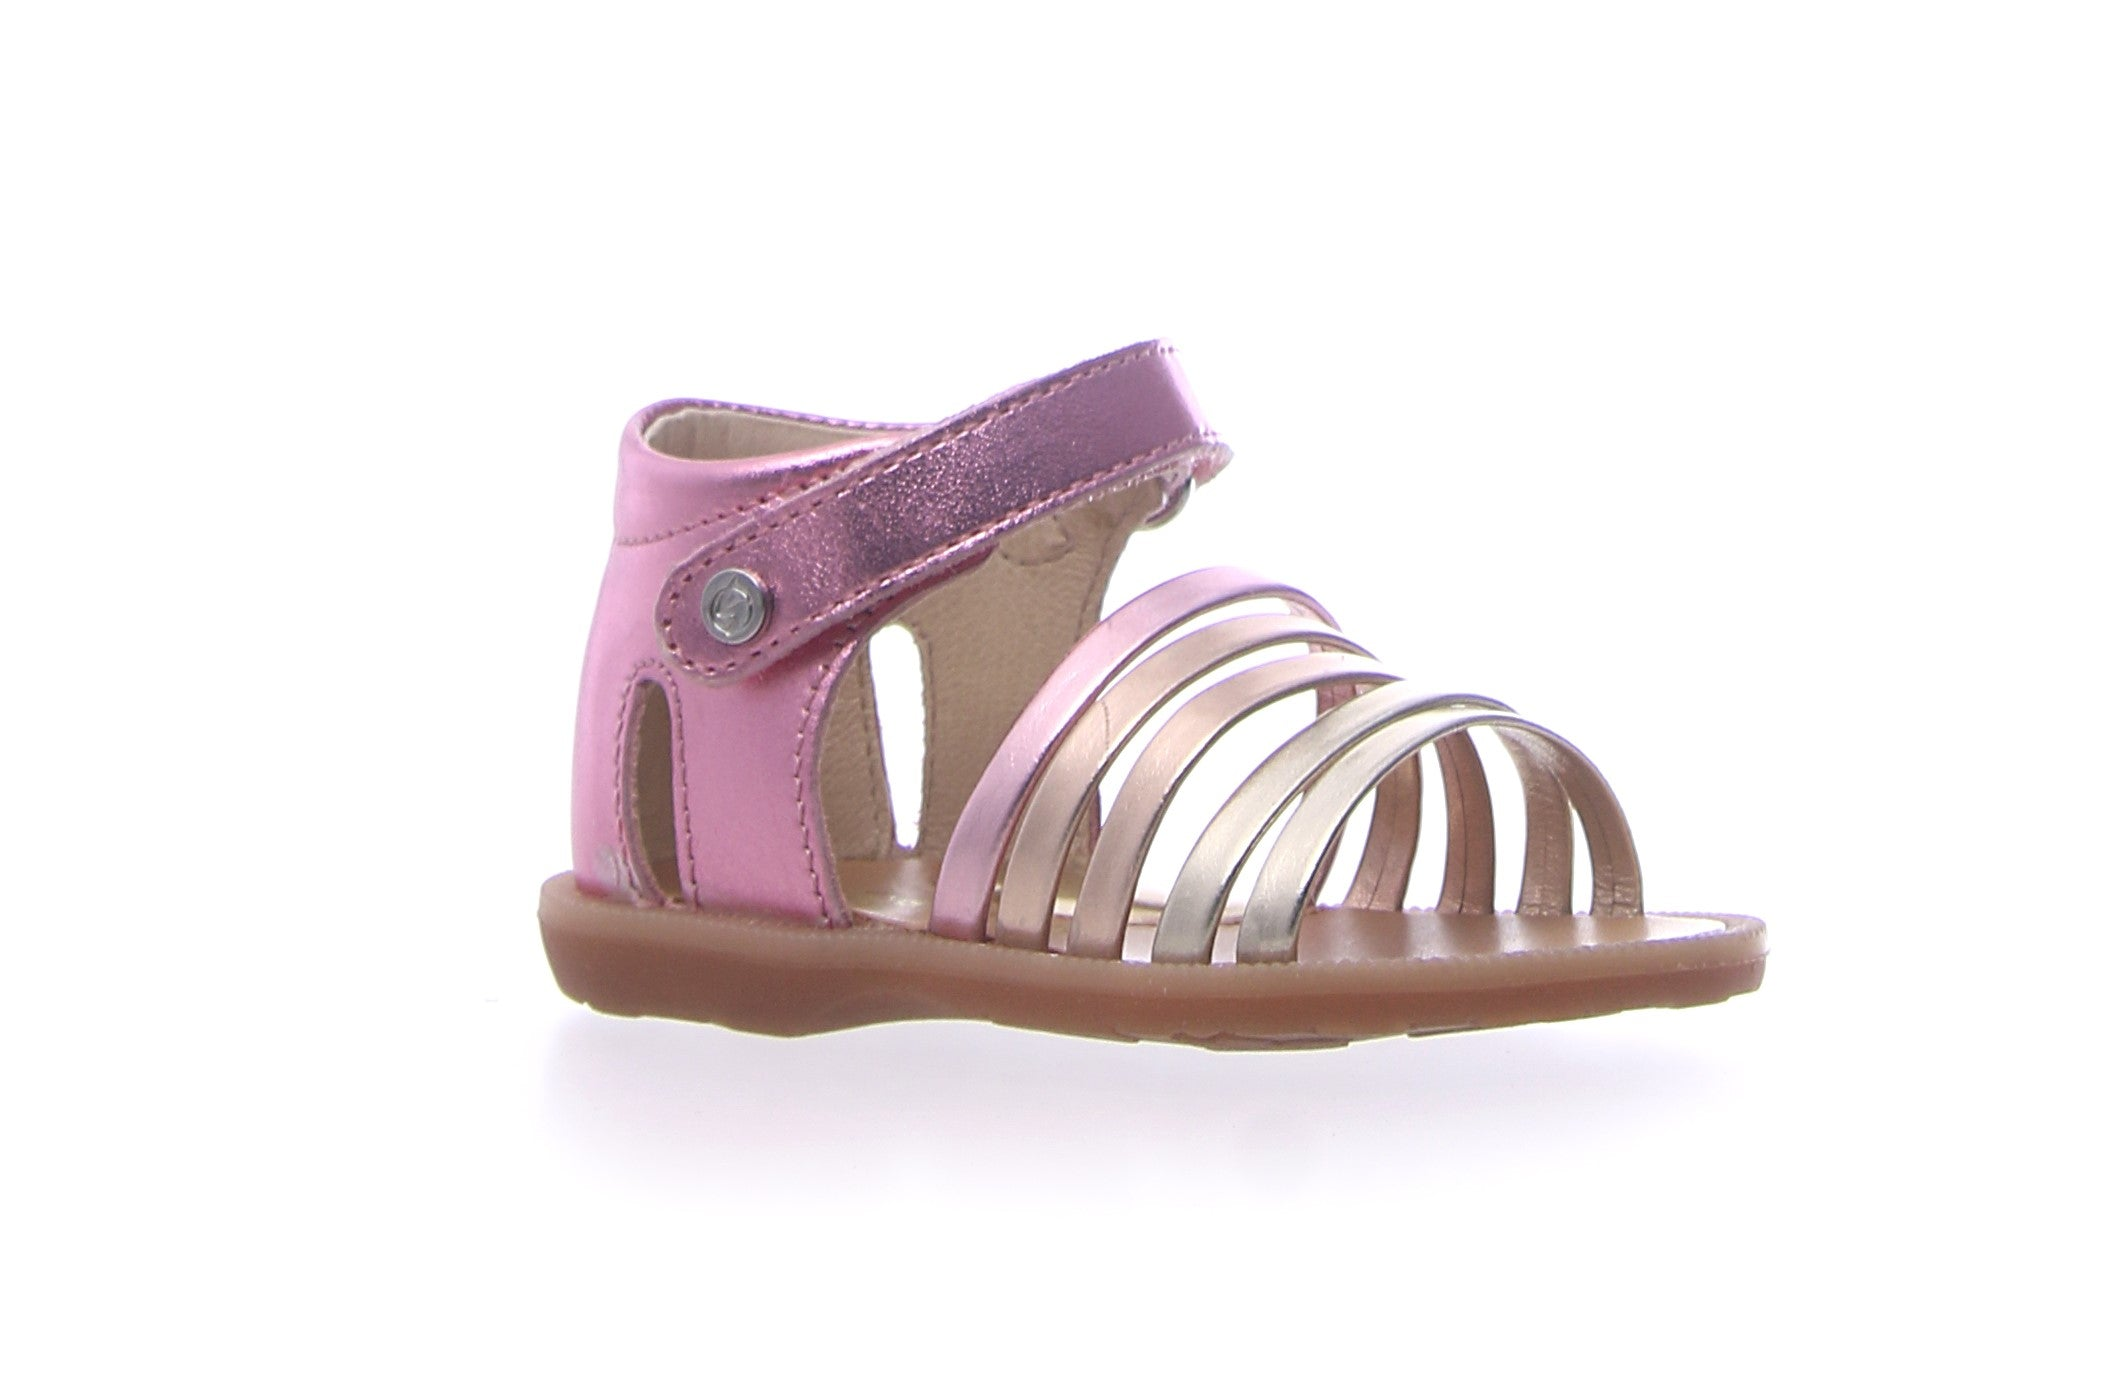 Naturino Pink/Multi Colored Open Sandal